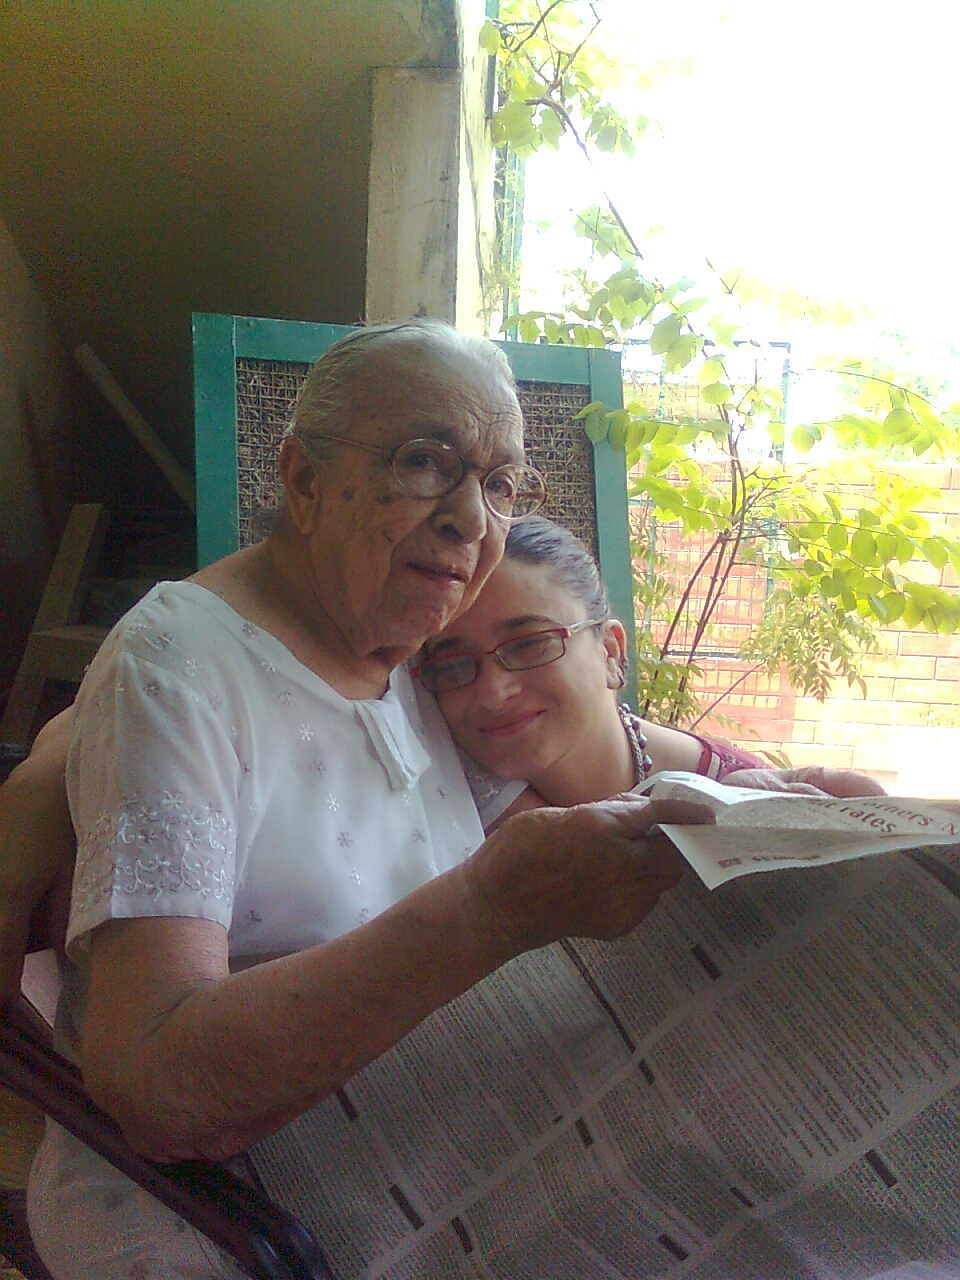 Sujata Sehgal cuddling with her grandmother in the balcony of their Delhi home.